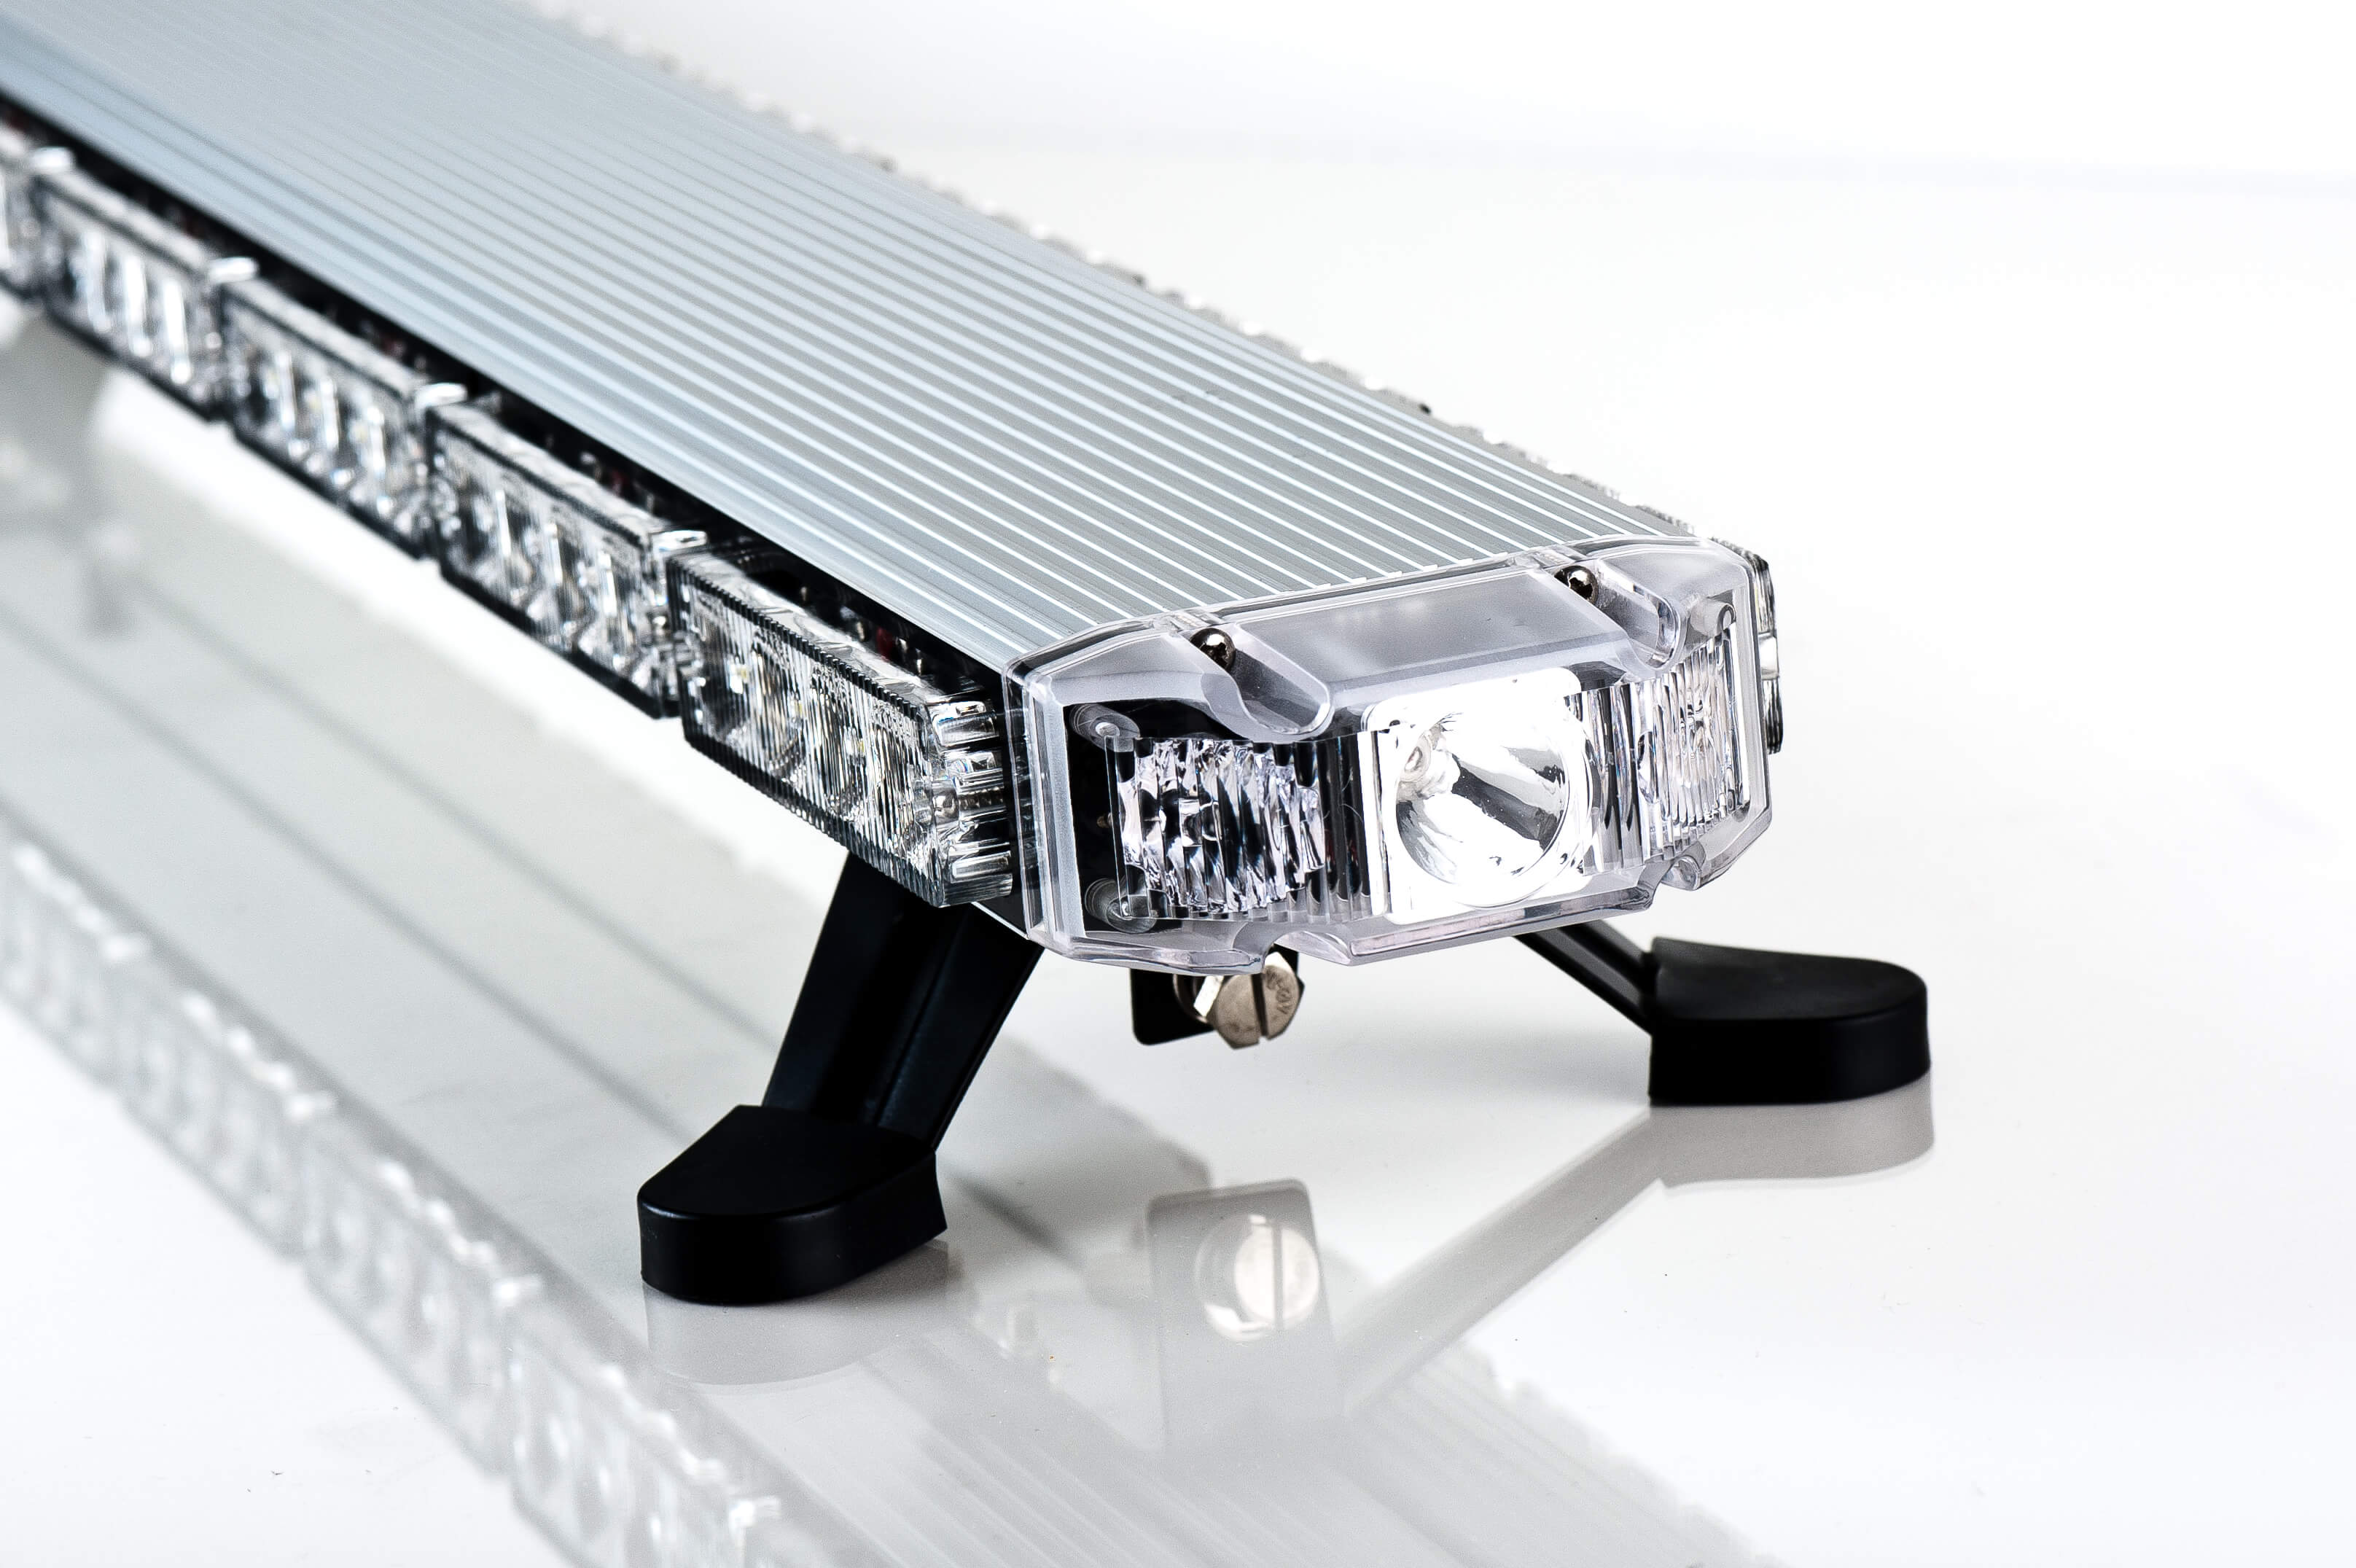 40 Quot Razor Tir Led Light Bars Warning And Emergency Light